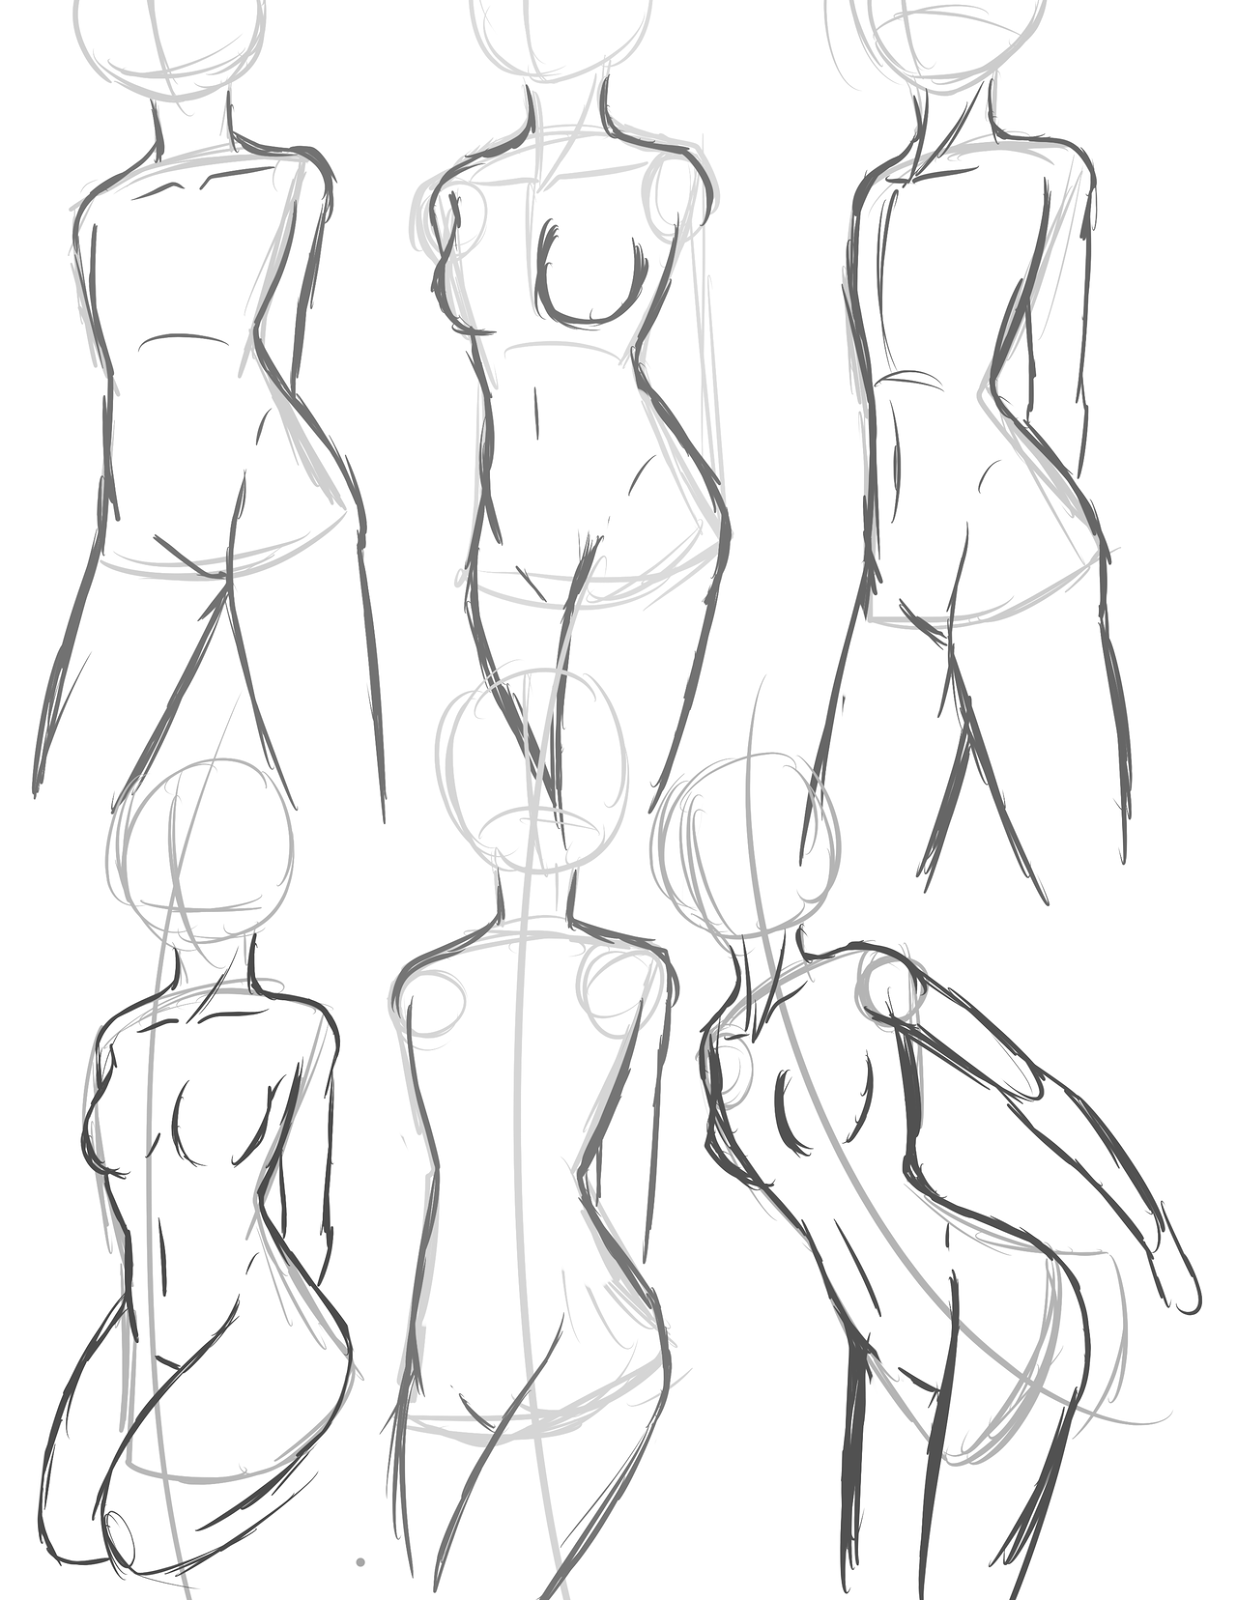 Here's The Anime Anatomy A Basic To Drawing Anime Tutorial Before I  Proceed, I Would